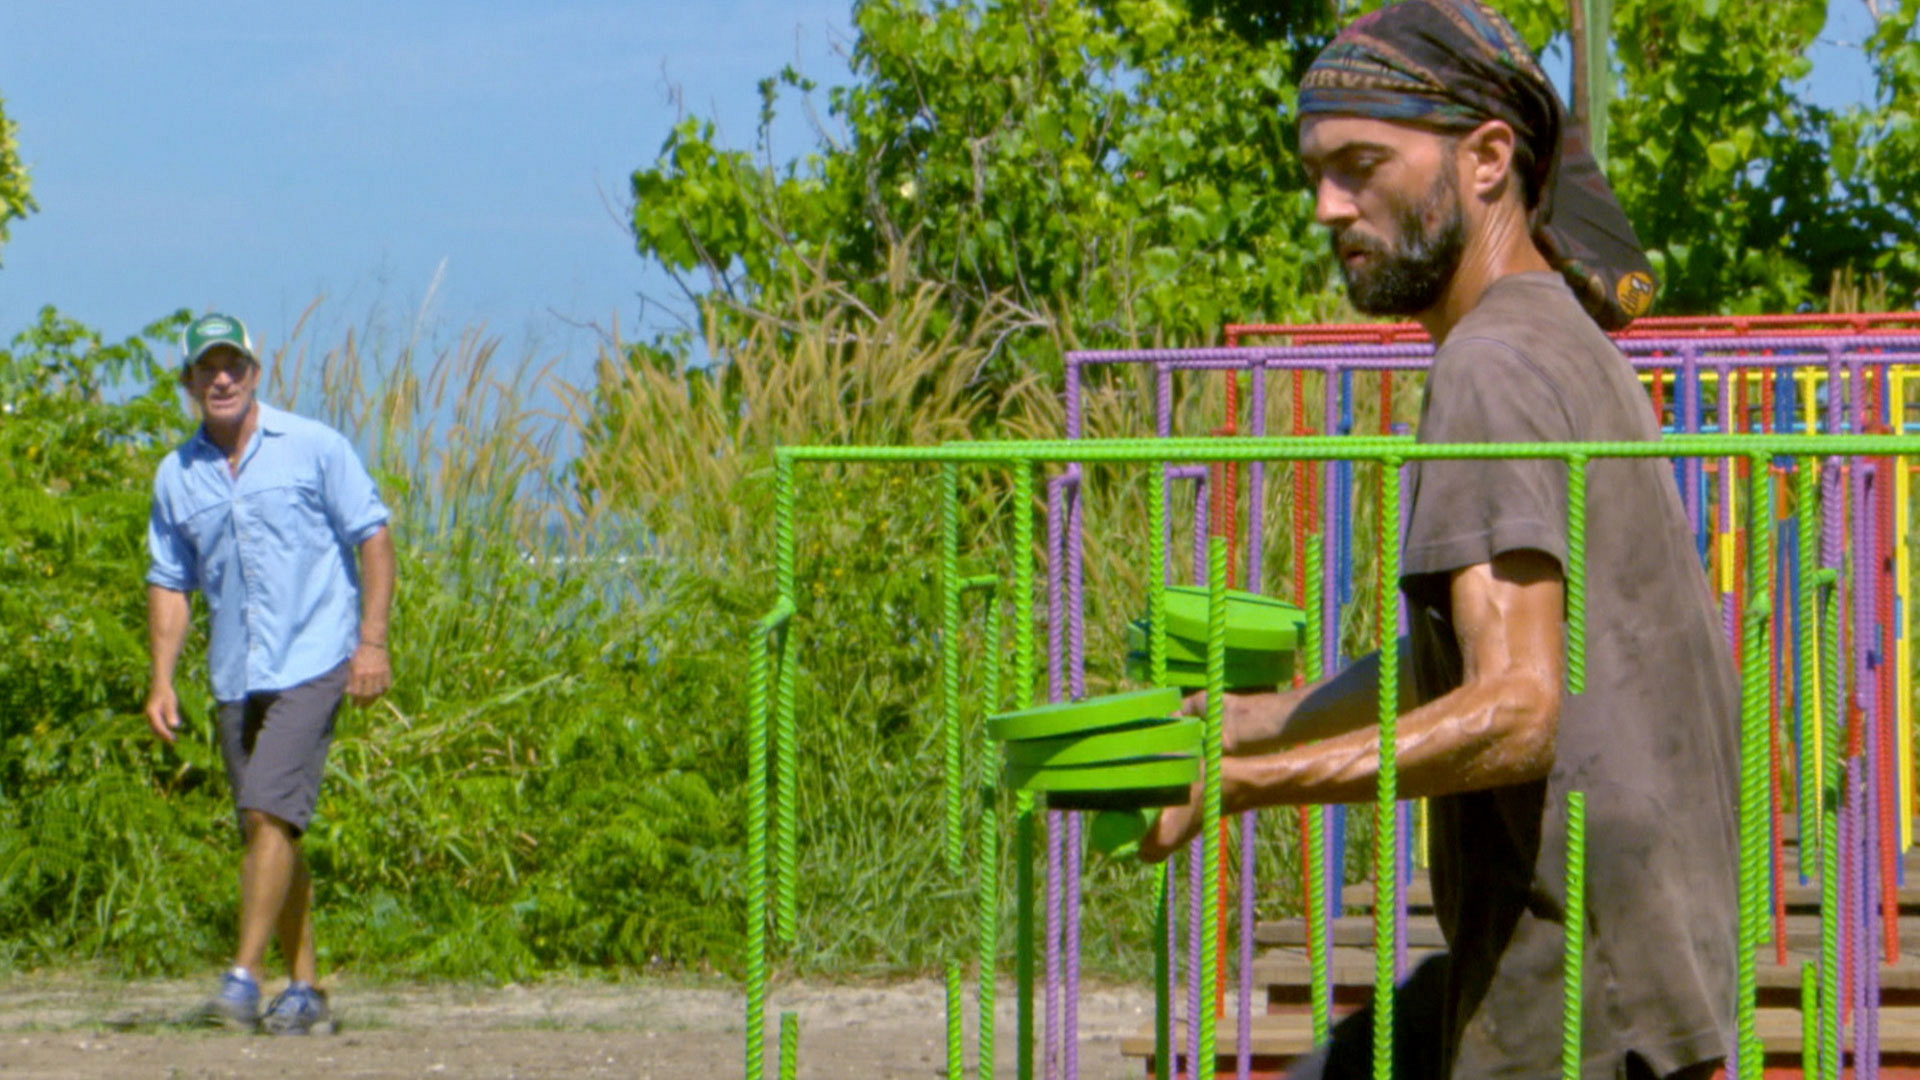 David works through the wire maze as Jeff Probst looks on.